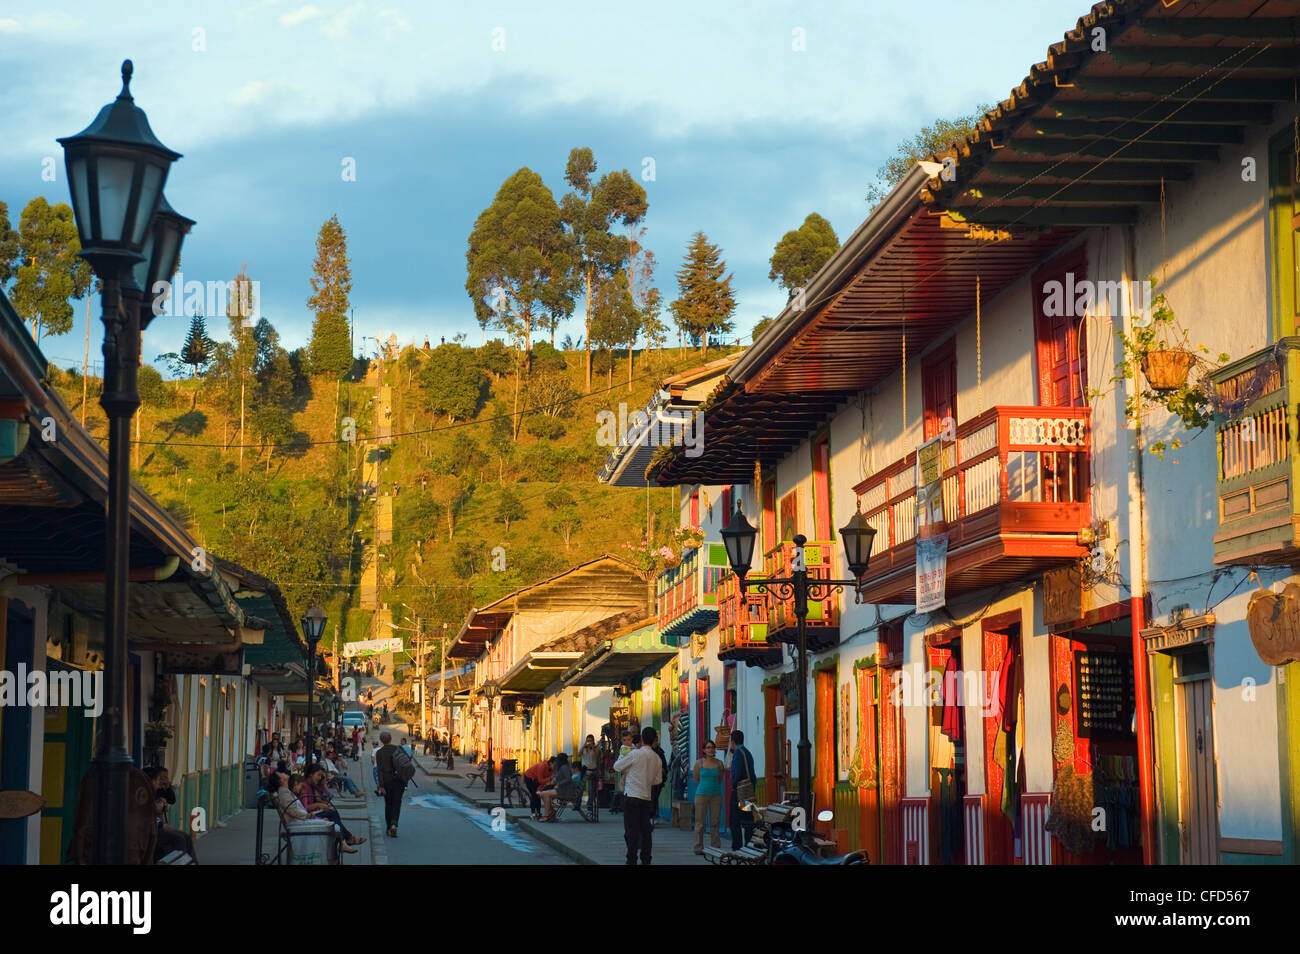 Colourful houses, Salento, Colombia, South America - Stock Image